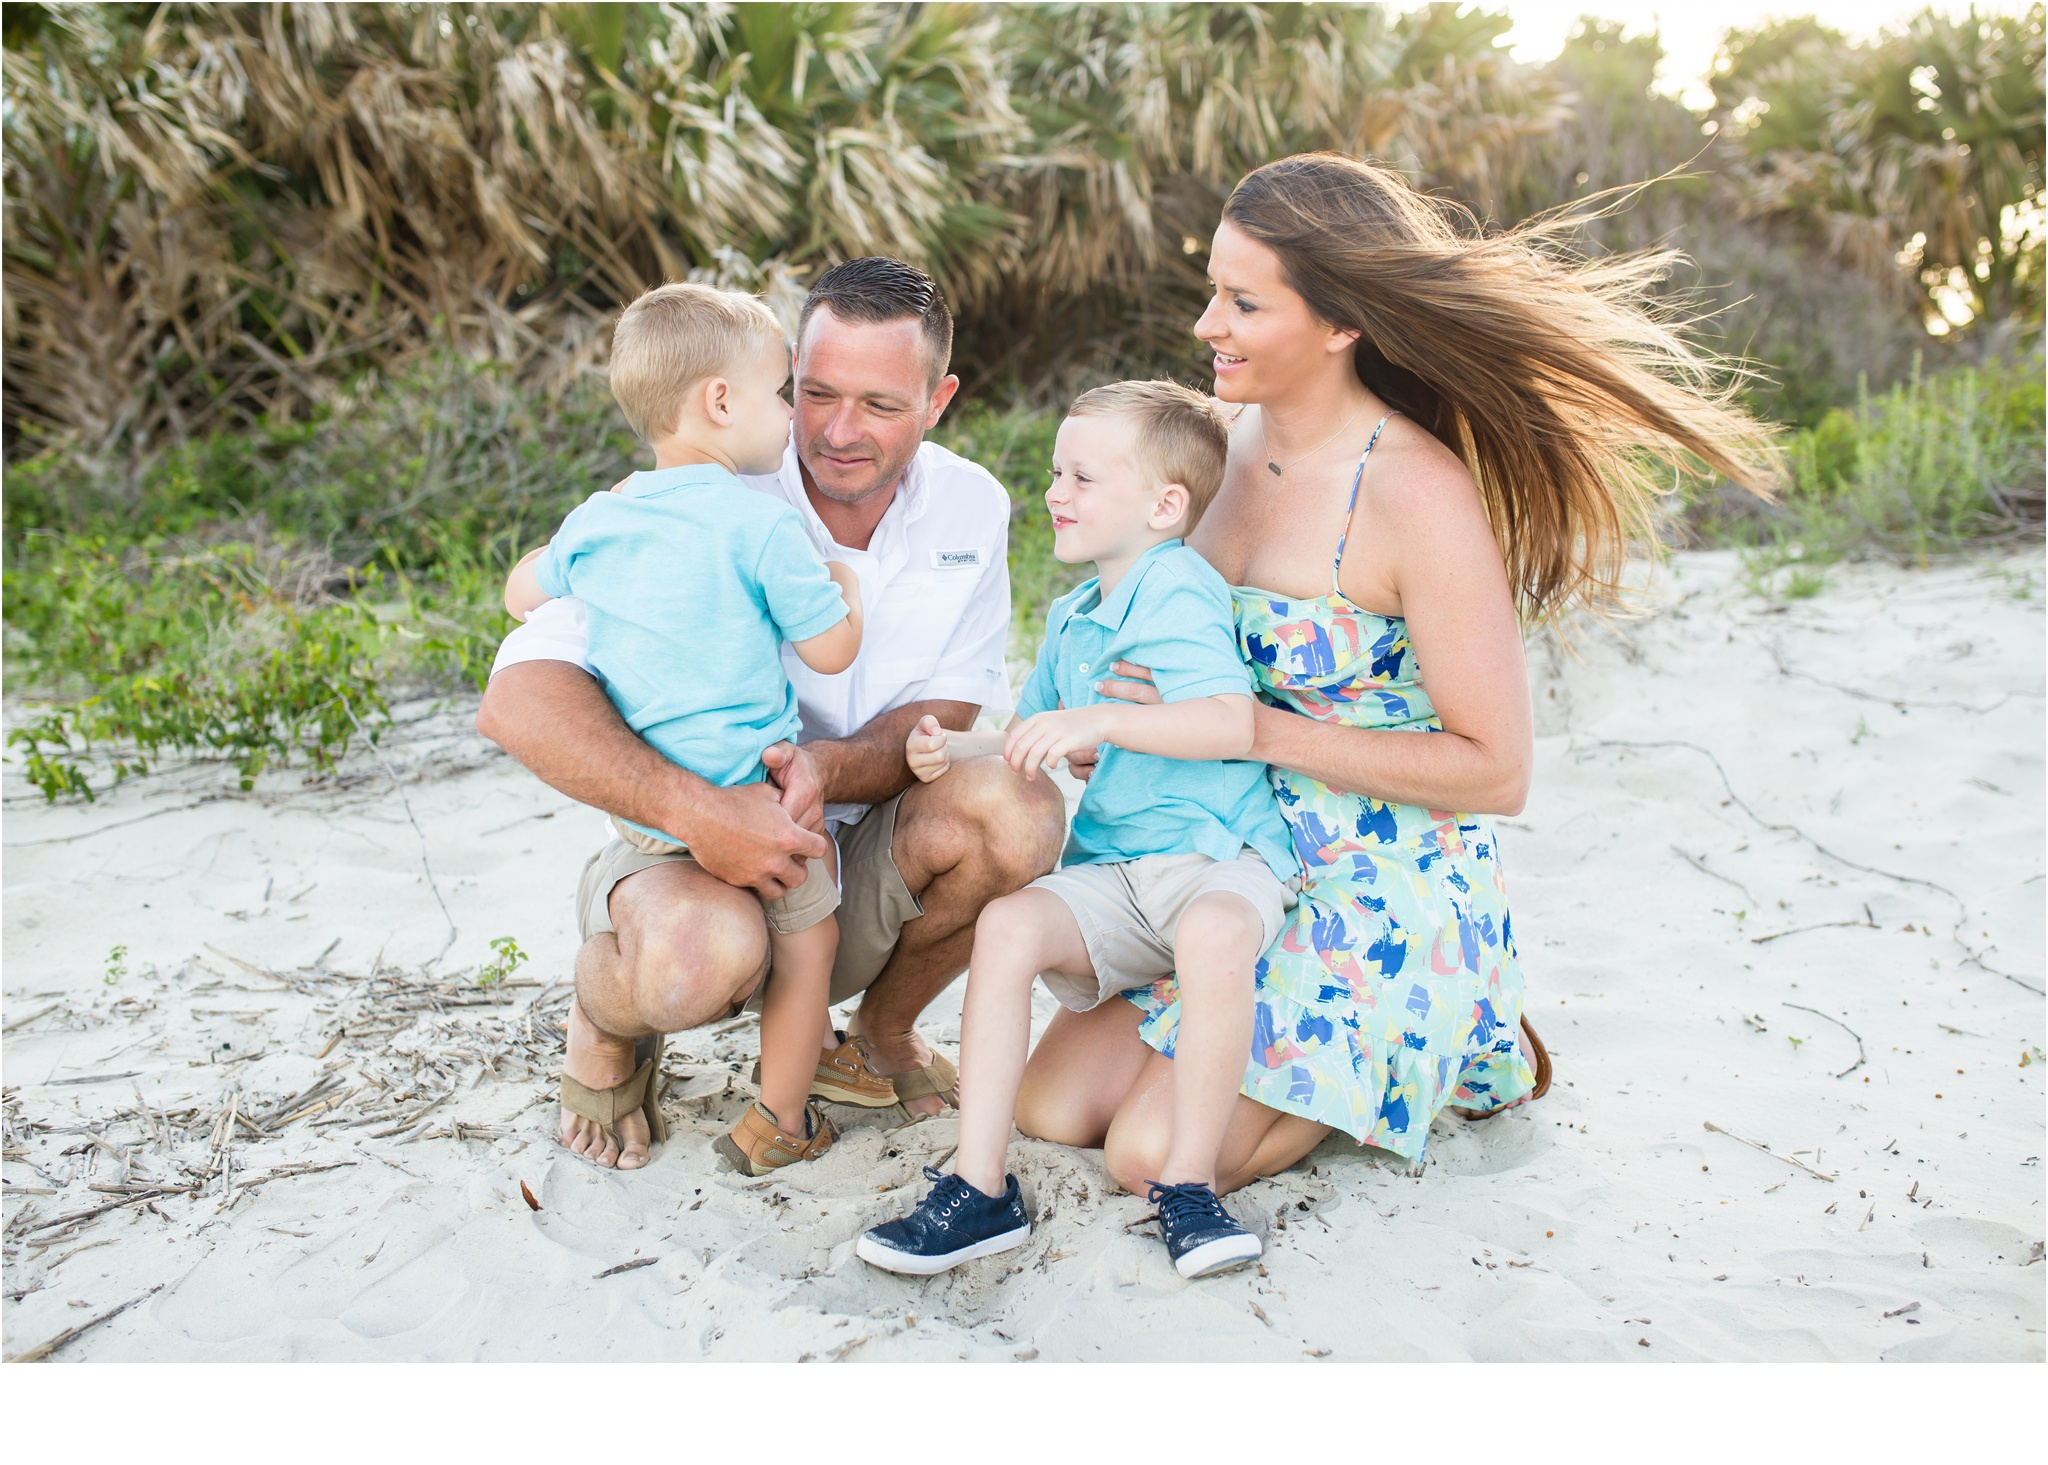 Rainey_Gregg_Photography_St._Simons_Island_Georgia_California_Wedding_Portrait_Photography_0931.jpg